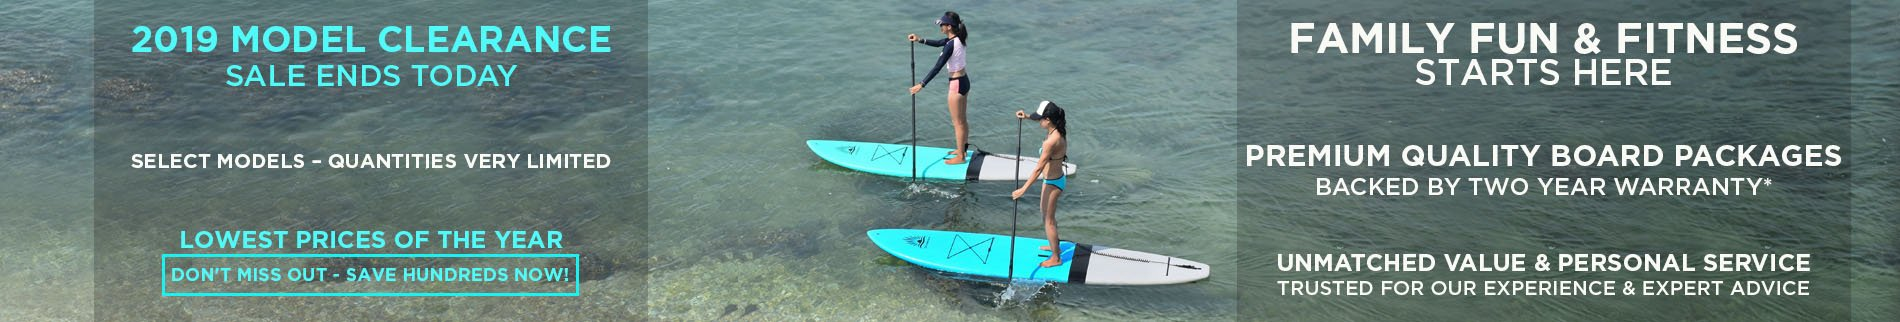 Women's Stand Up Paddle Board | Spring Clearance Sale